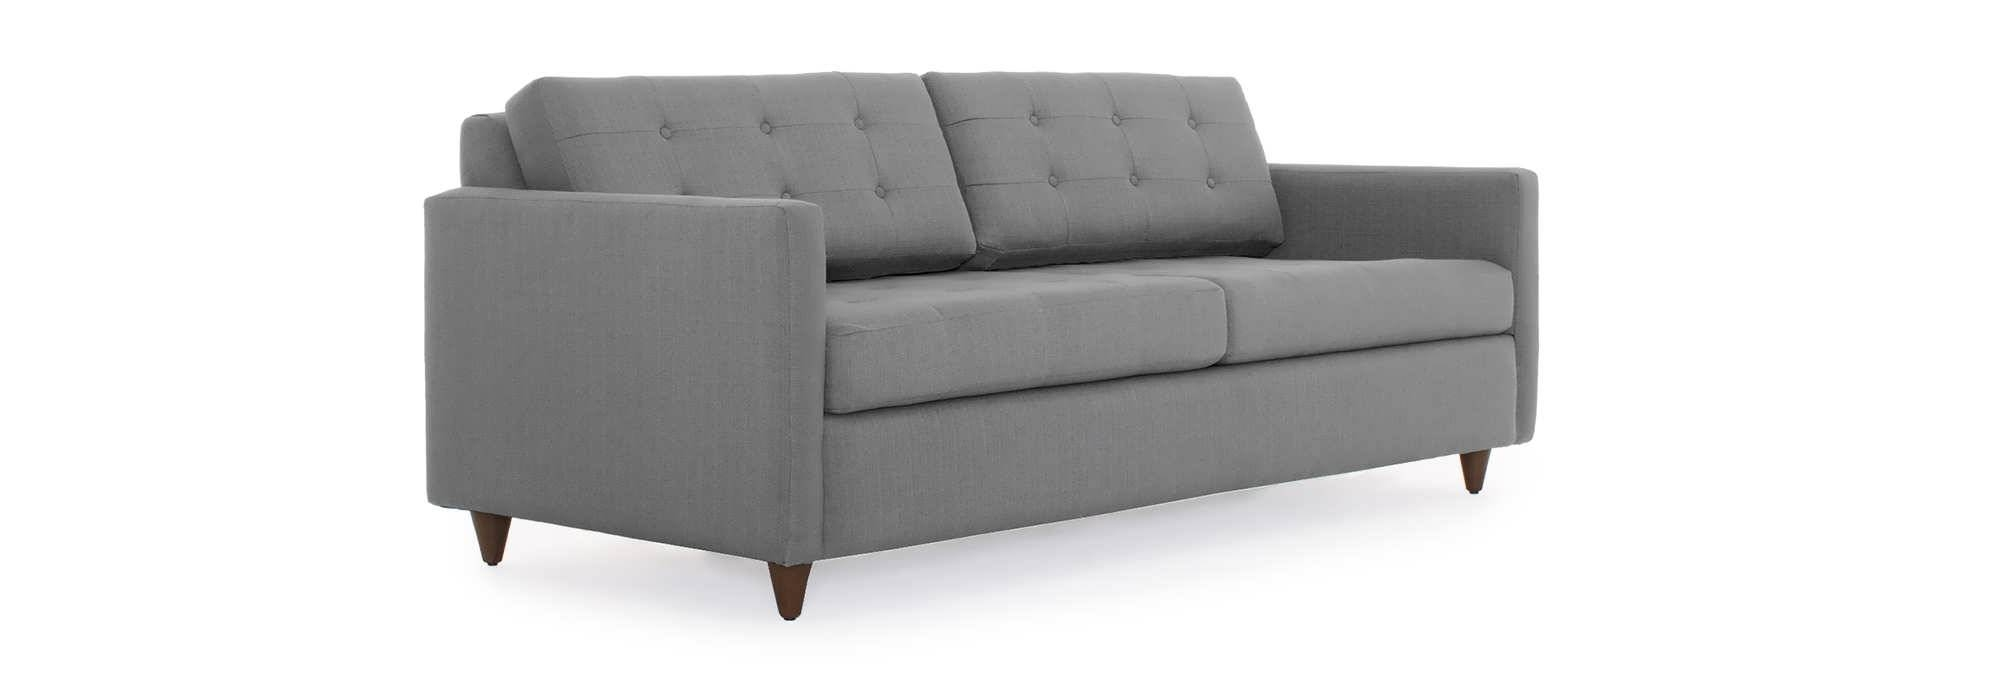 Sofa : Sofa And Chair 81 Inch Sofa Shallow Sofa Large Seat Depth with Narrow Depth Sofas (Image 12 of 15)